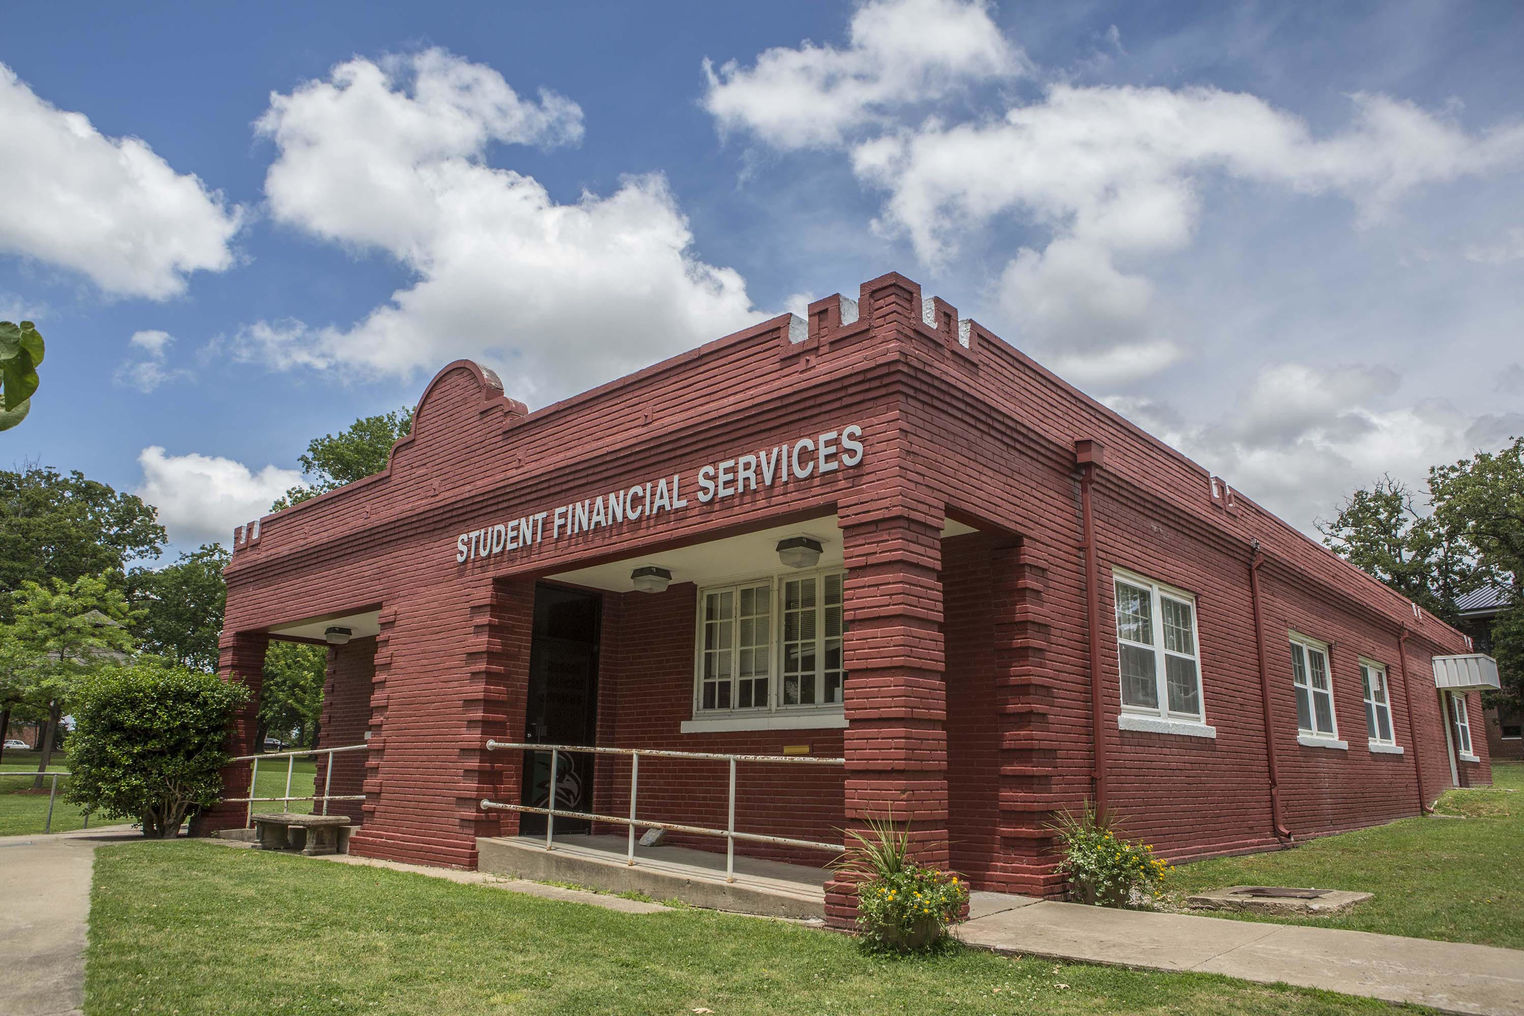 Student Financial Services - Tahlequah